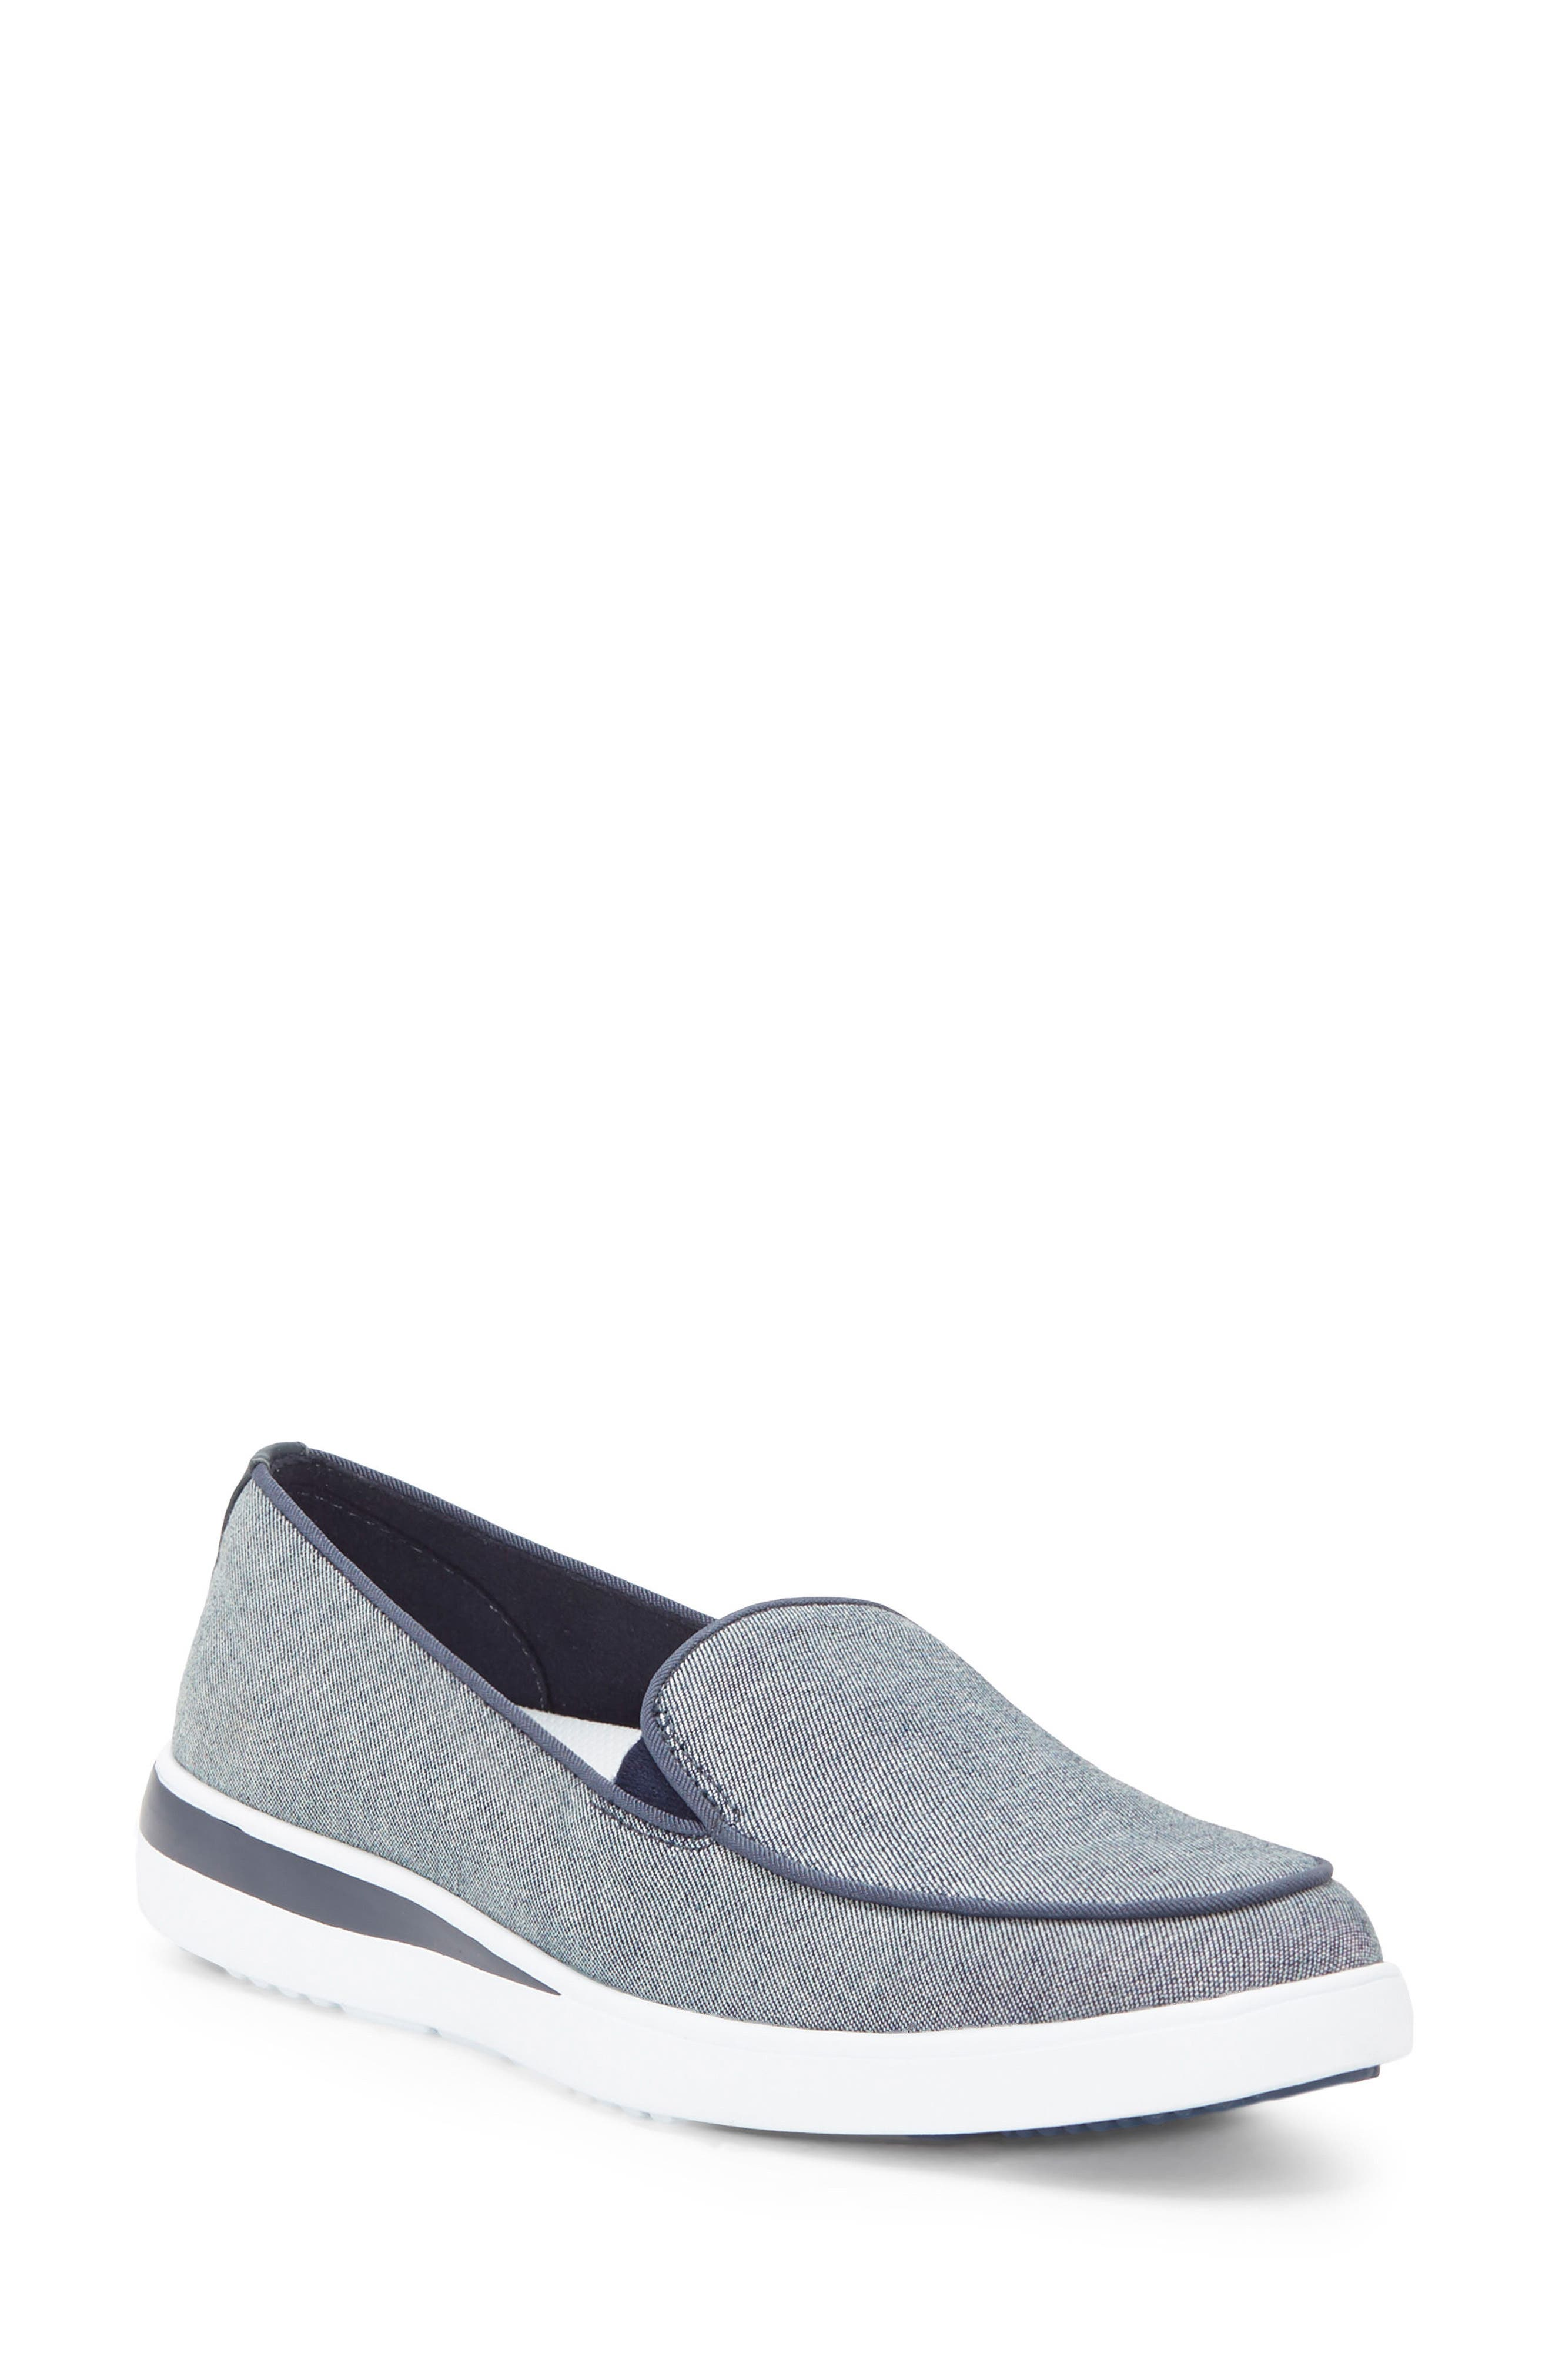 Antona Slip-On Sneaker,                         Main,                         color, Blue Fabric